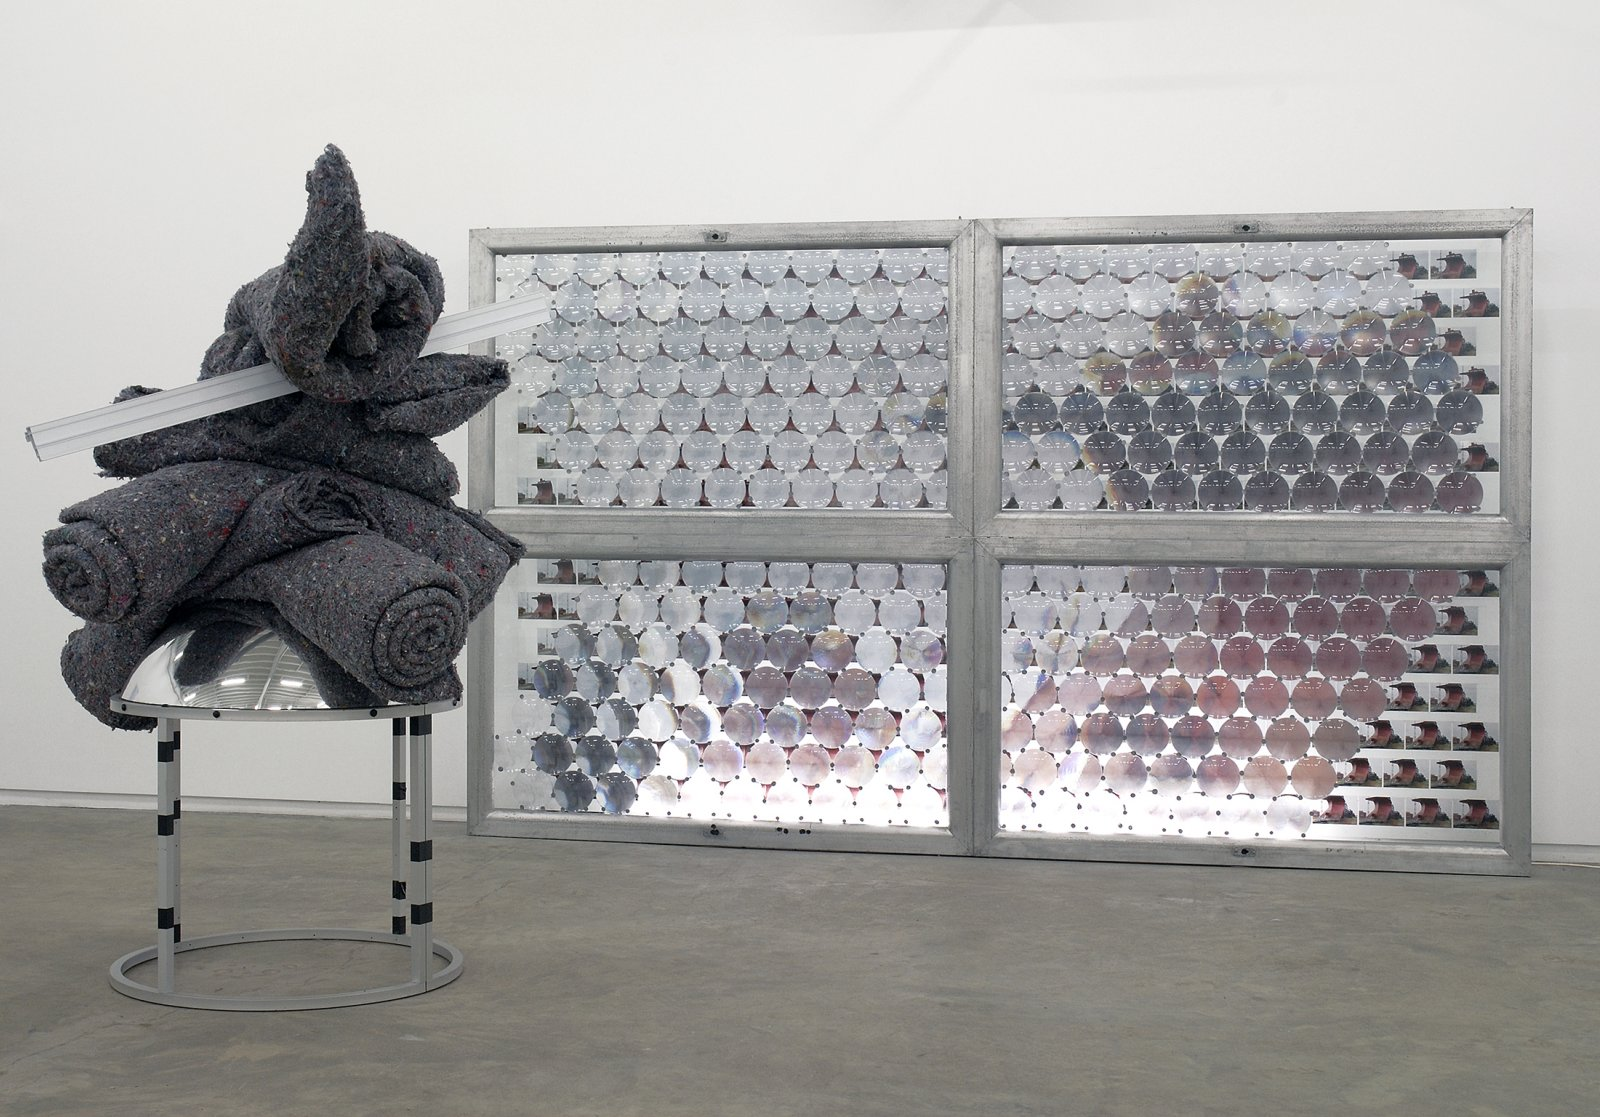 Jerry Pethick, Out of the Corner of an Eye, 1990, 308 photographs, 268 fresnel lenses, aluminum, glass, fluorescent light fixture, carpet underlay, plastic, mirrored dome, black tape, 133 x 144 x 87 in. (338 x 366 x 221 cm)   by Jerry Pethick